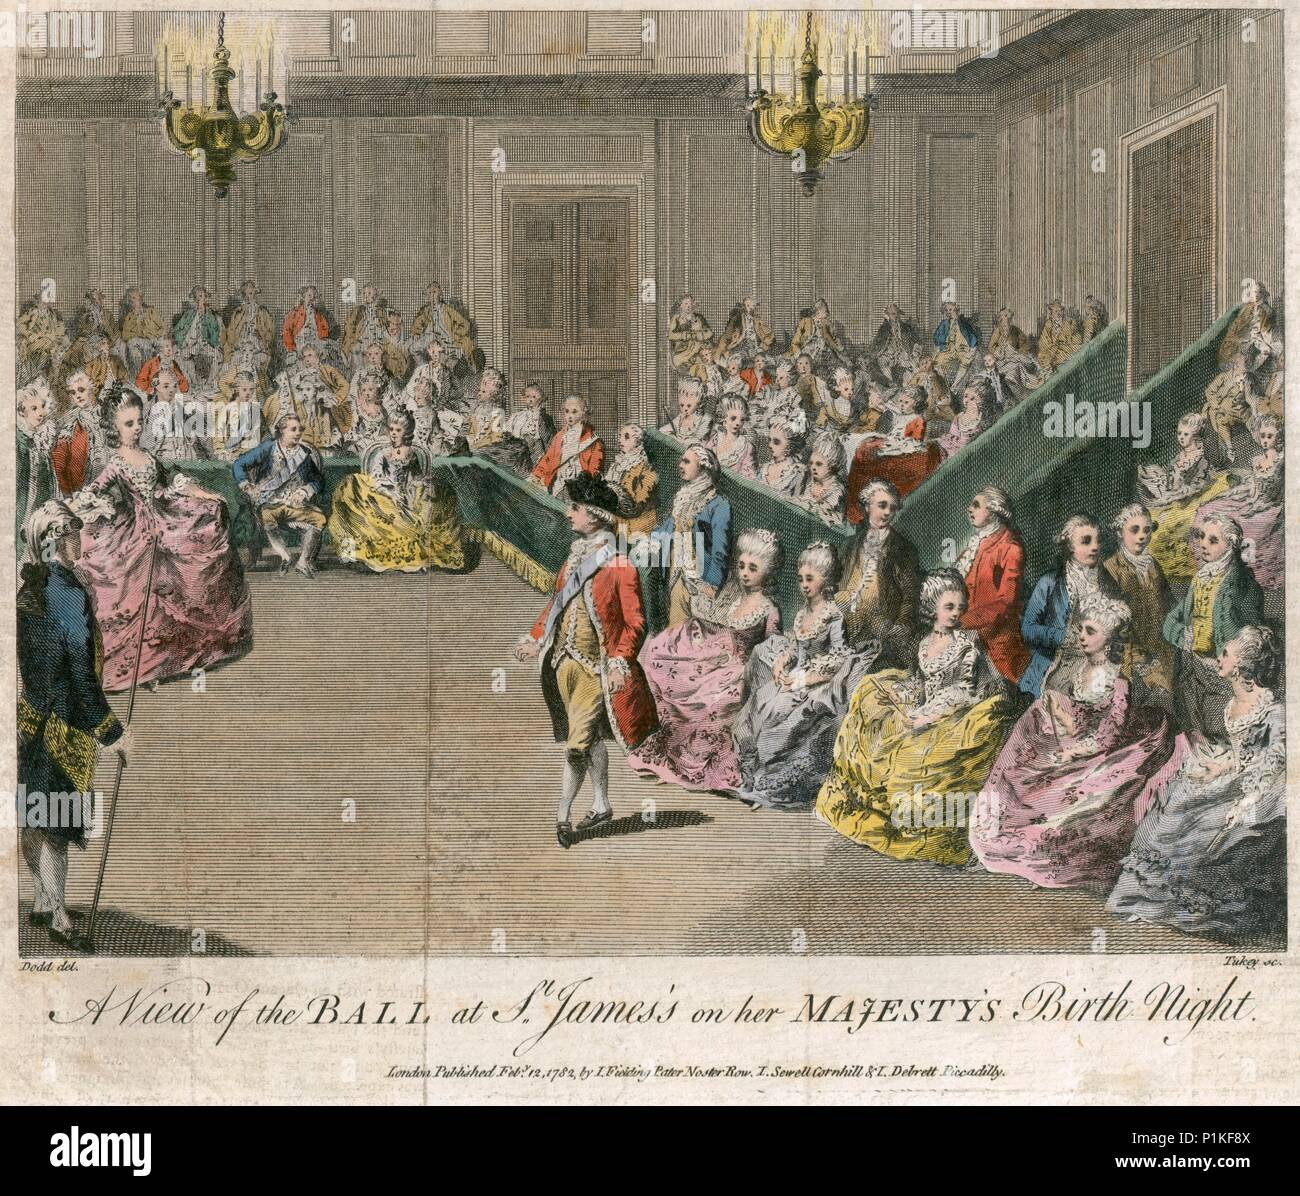 'A view of the Ball at St James's on her Majesty's birth night', 1782. Ball at St James's Palace, London, on the night of the birthday of Queen Charlo - Stock Image